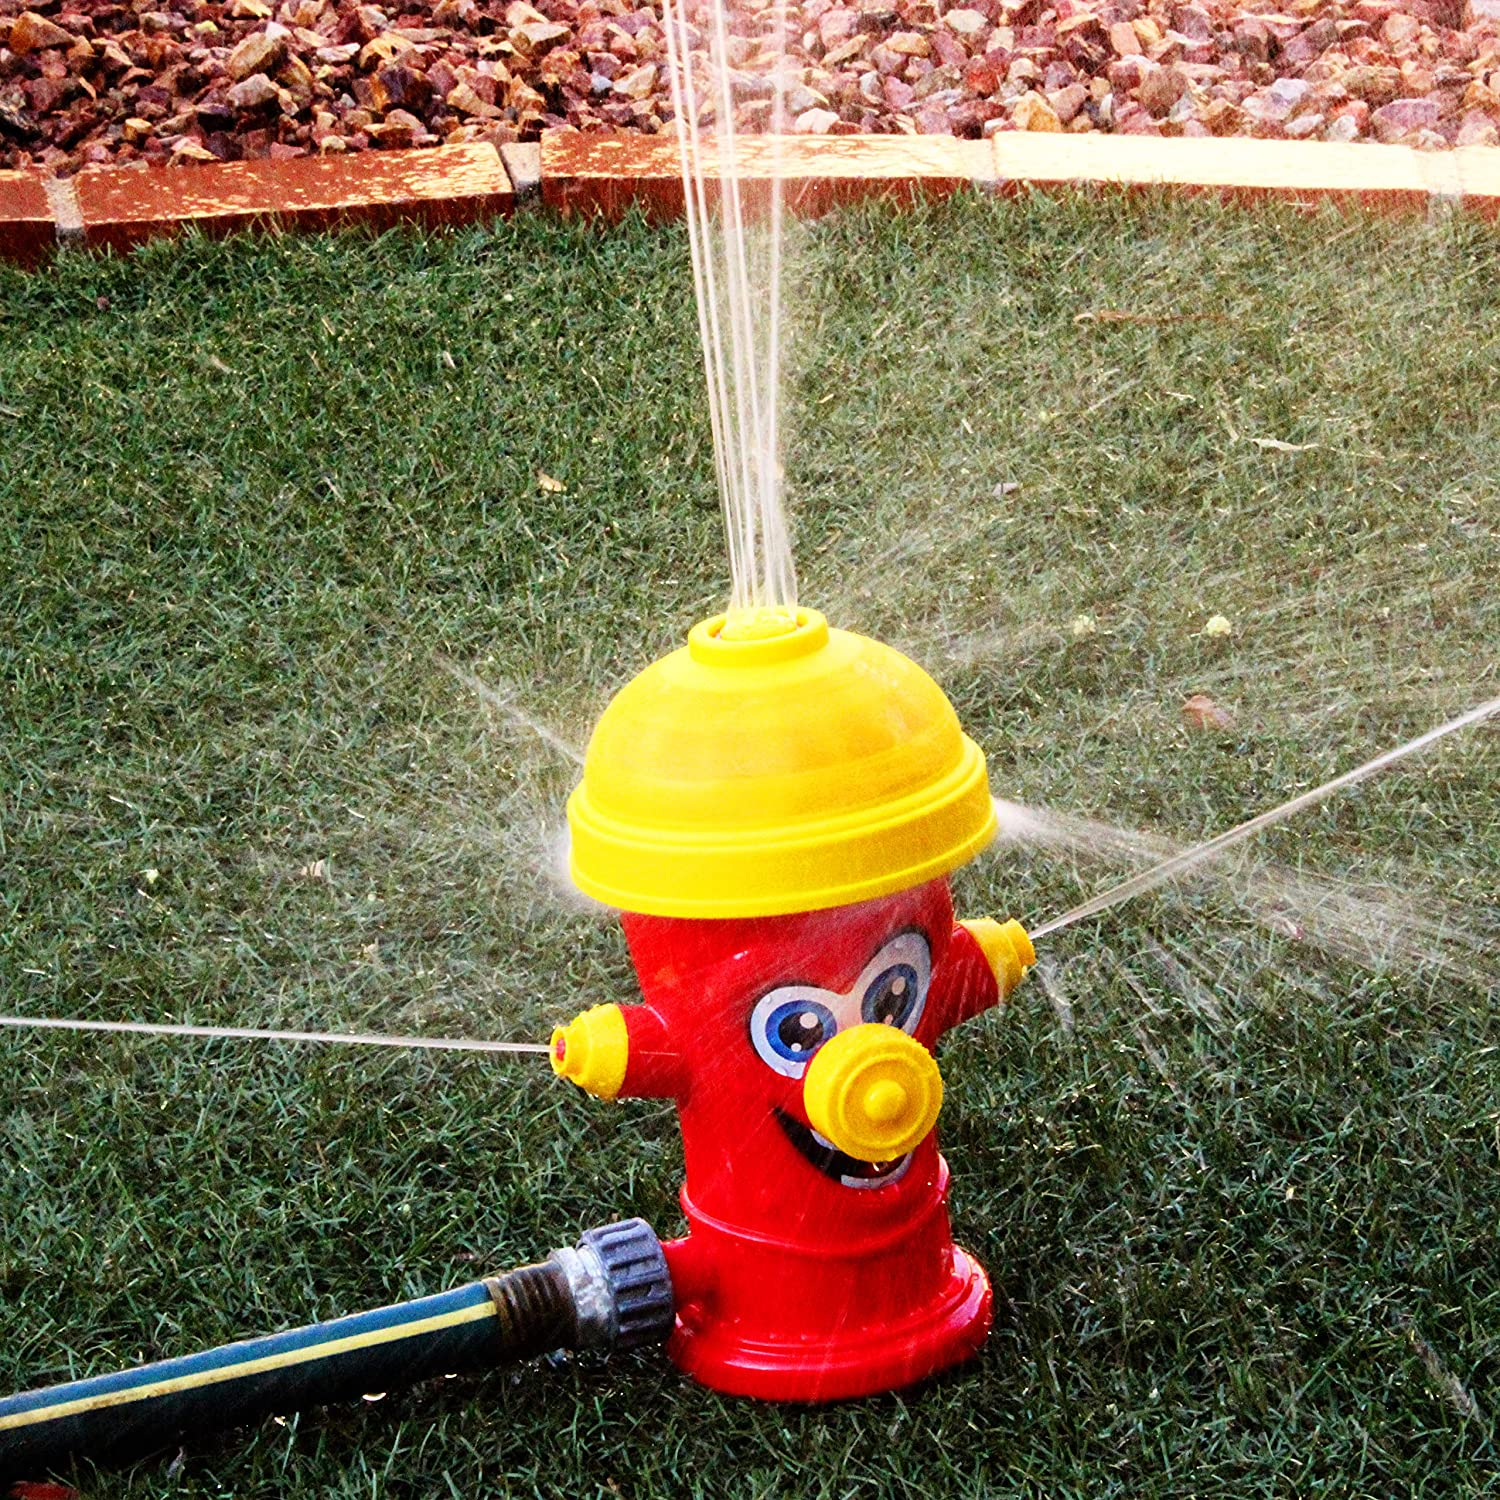 JOYIN Fire Hydrant Water Sprinklers for Kids Kids Sprinkler Water Toys for Outdoor Yard and Summer Fun Activities